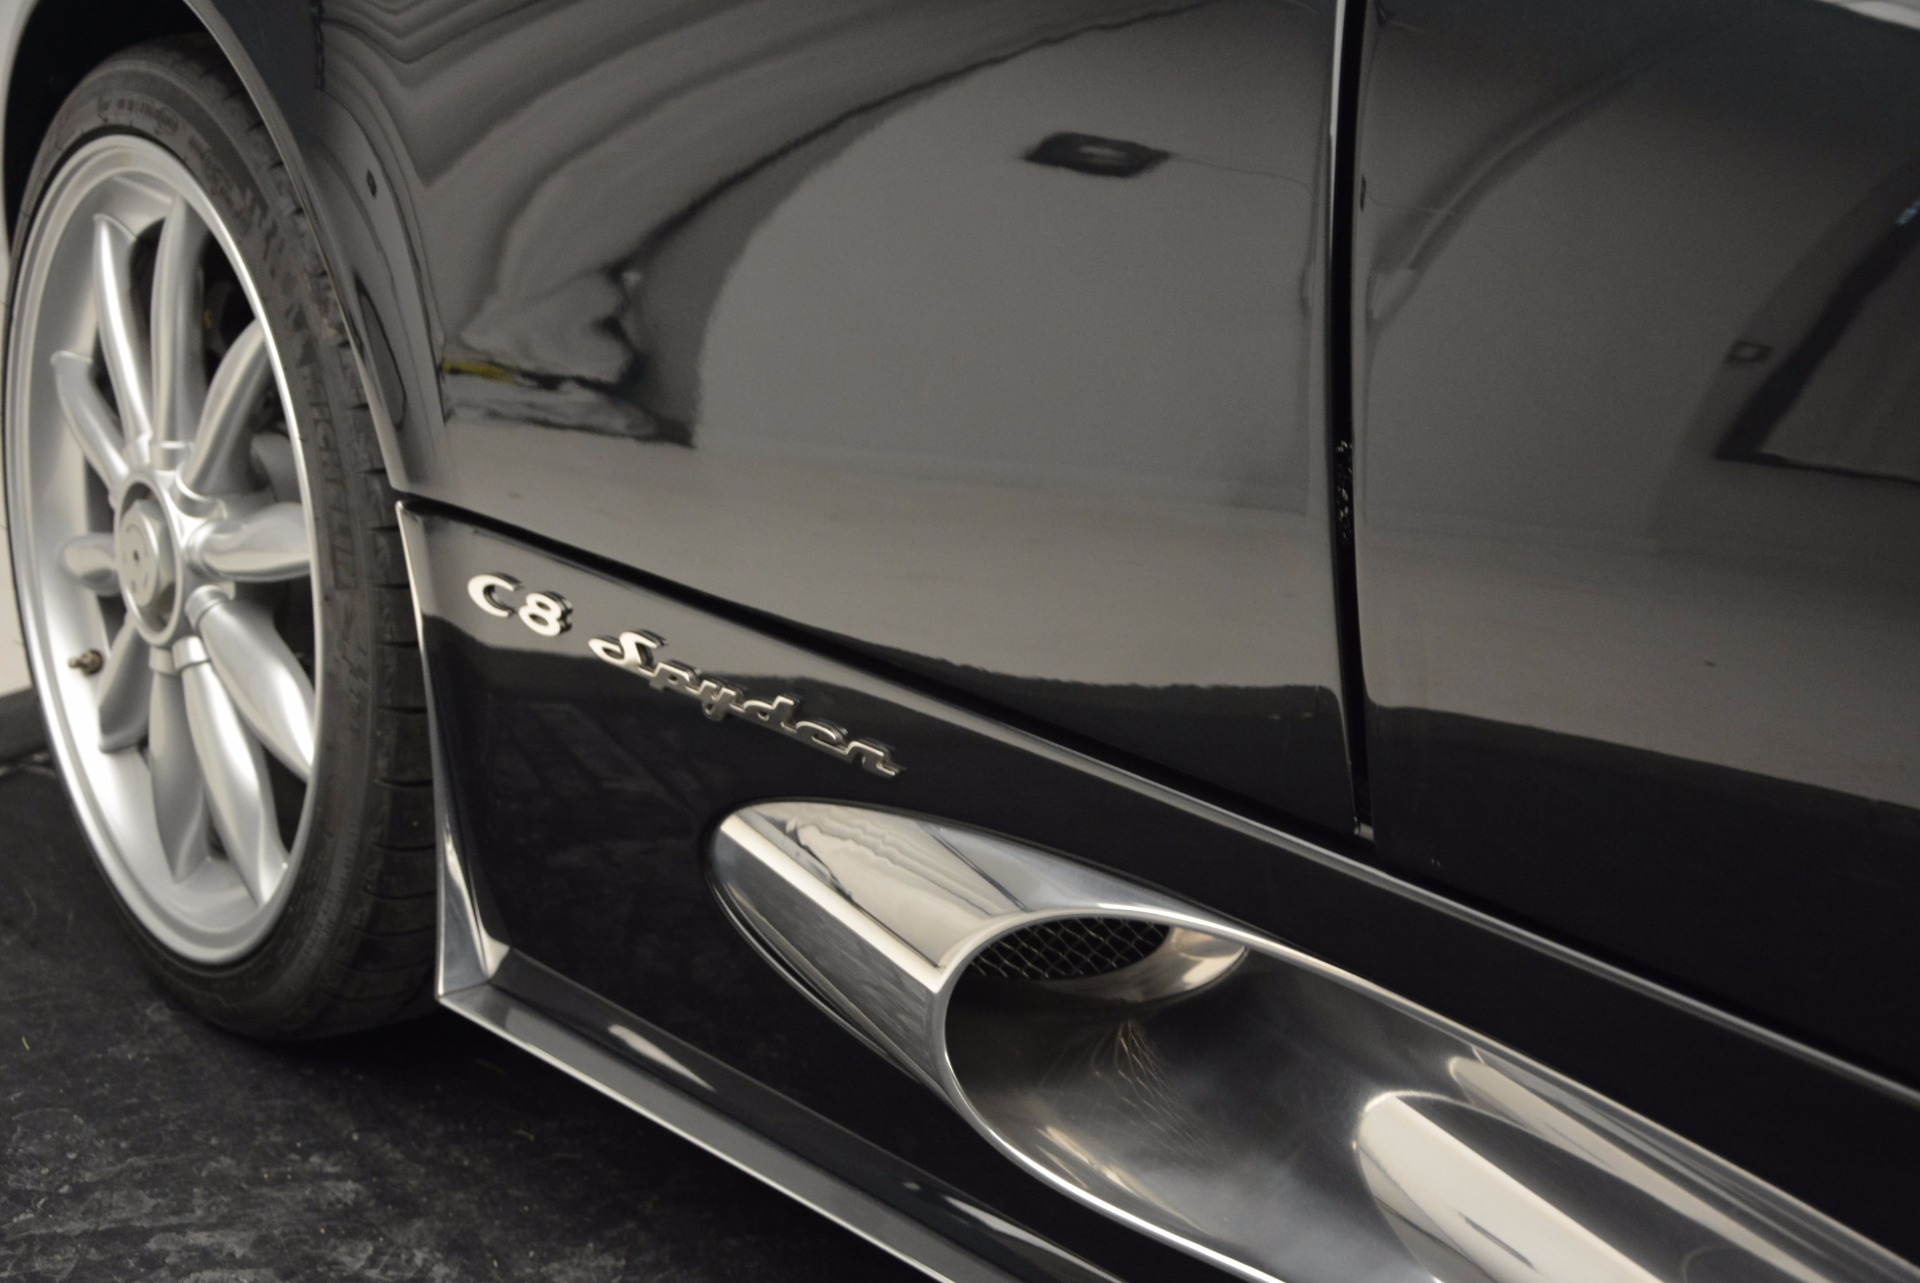 Used 2006 Spyker C8 Spyder  For Sale In Greenwich, CT 1007_p23